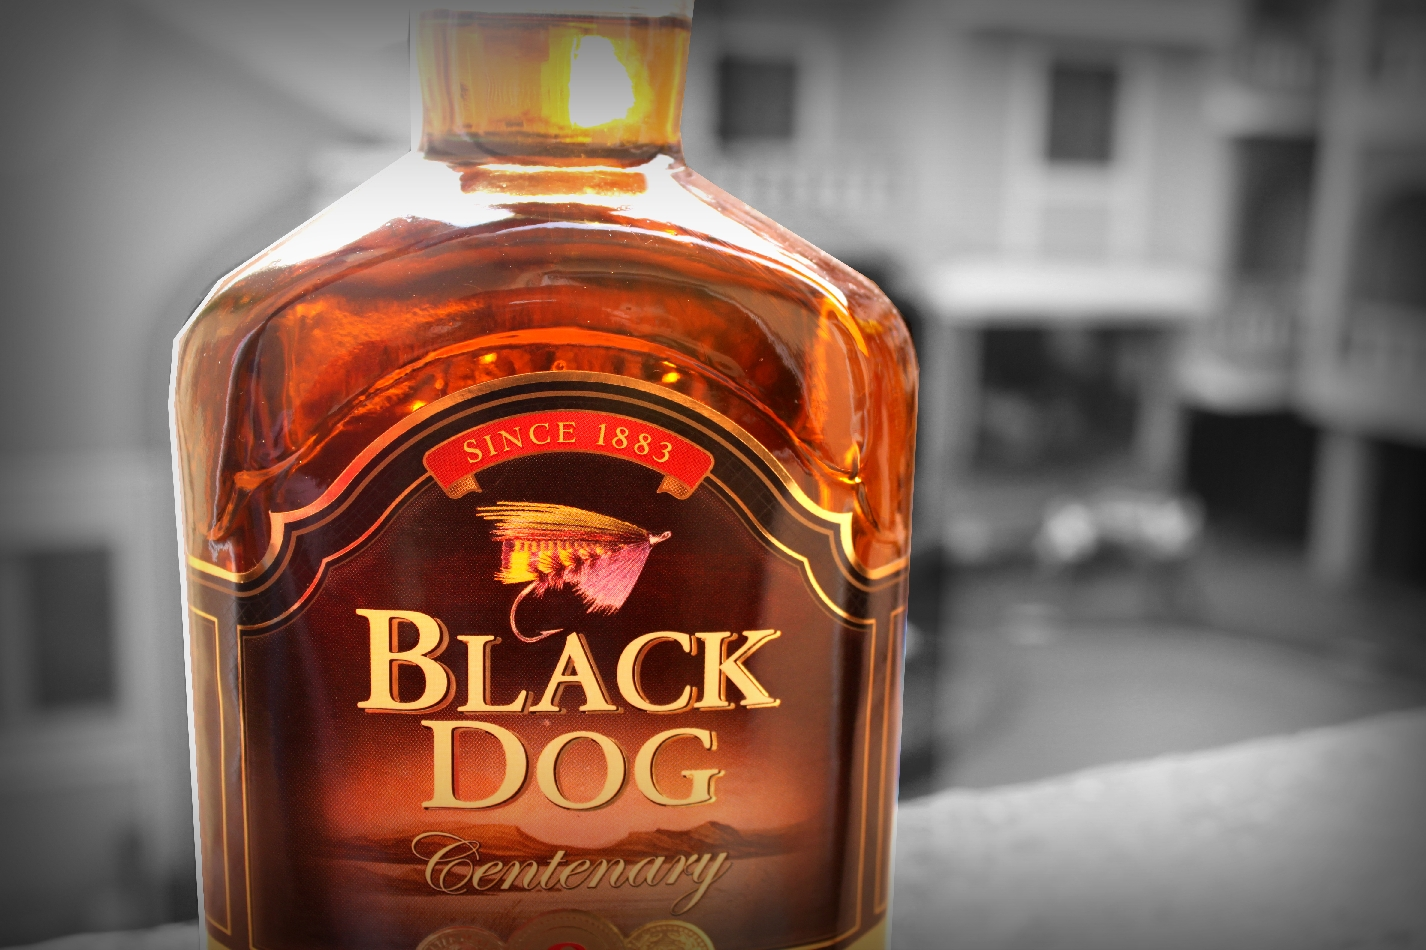 Black Dog Whisky Price In Pune